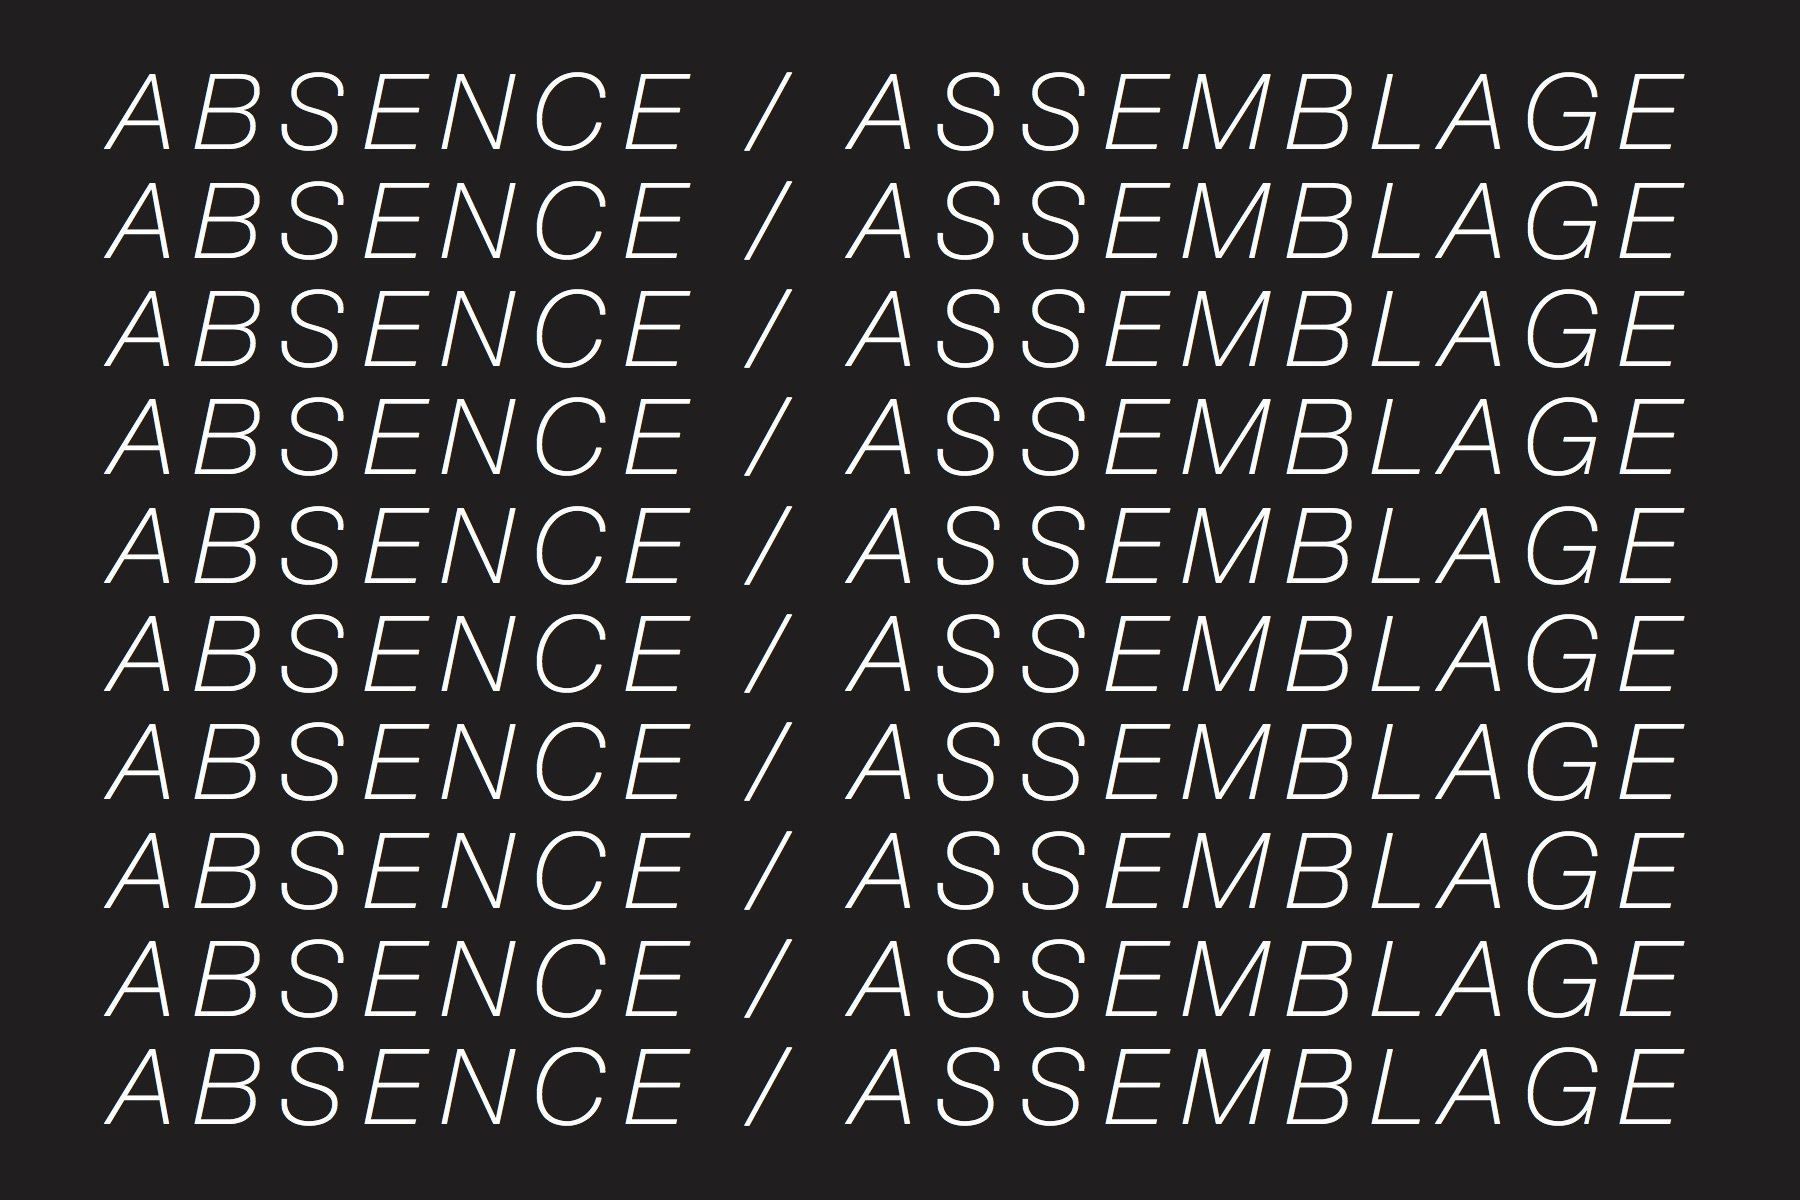 Absence/Assemblage graphic